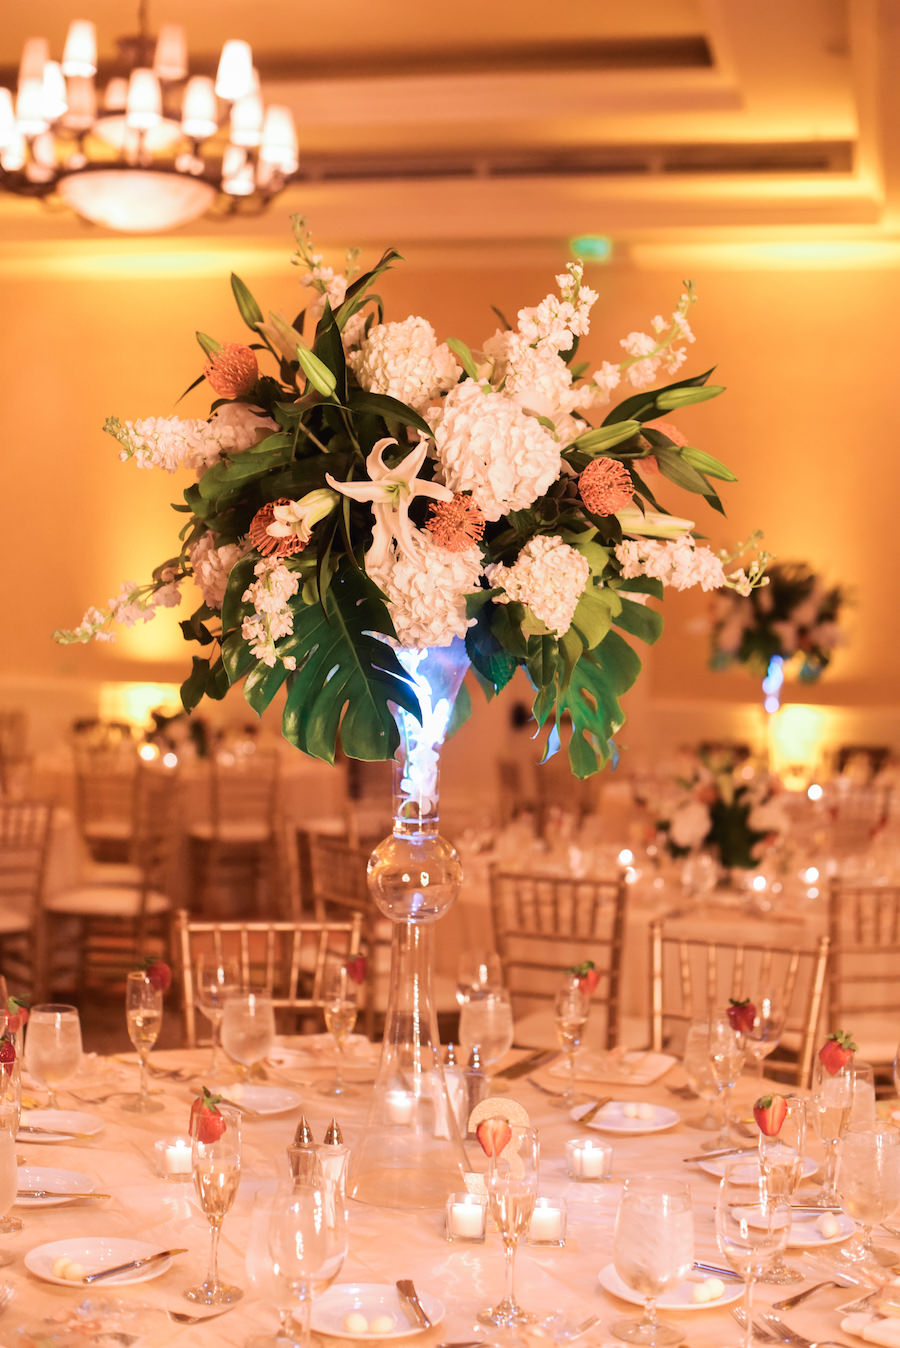 Formal, Beach Wedding Reception Décor with Gold, Ivory, Green and Coral Tall Centerpieces with Hydrangea and Tropical Greenery | Lighting by Nature Coast Entertainment Services